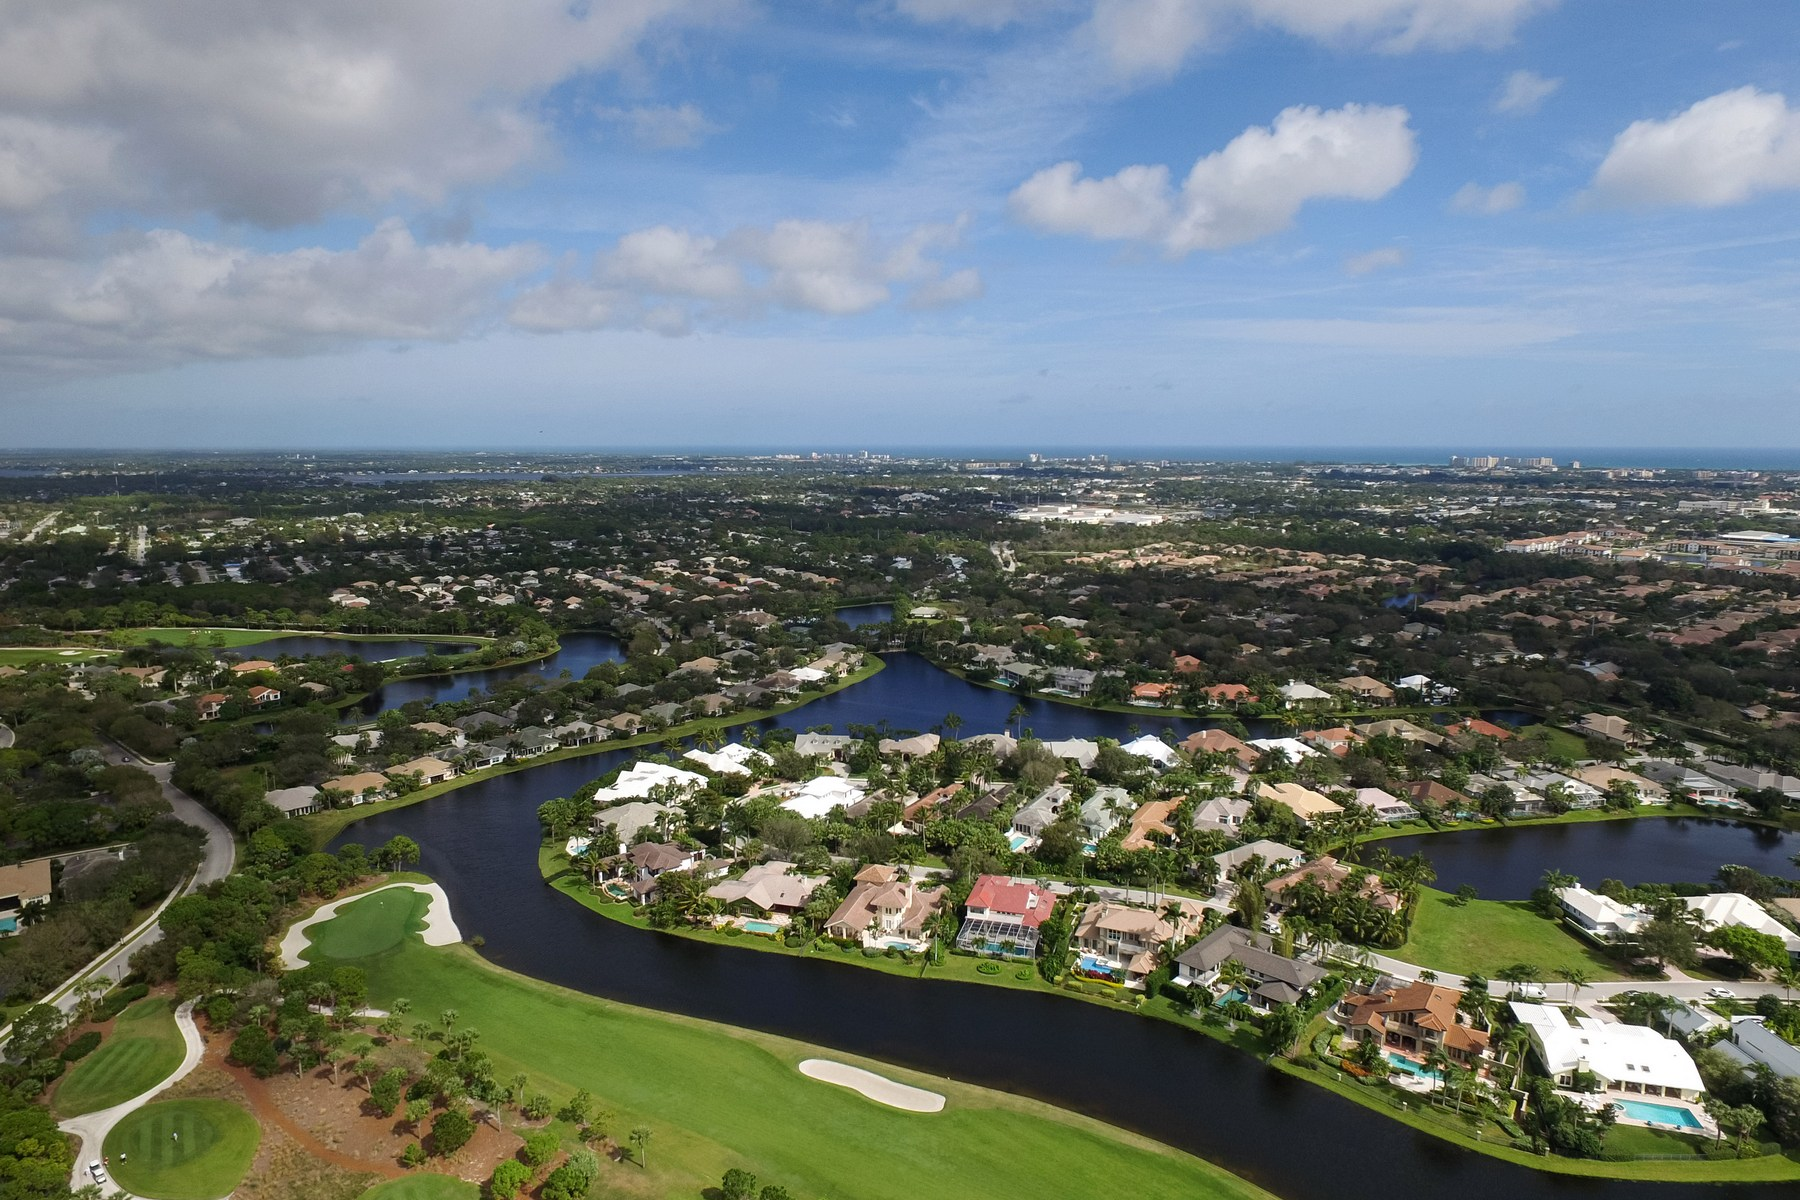 Land for Sale at 107 Sota Drive The Loxahatchee Club, Jupiter, Florida, 33458 United States